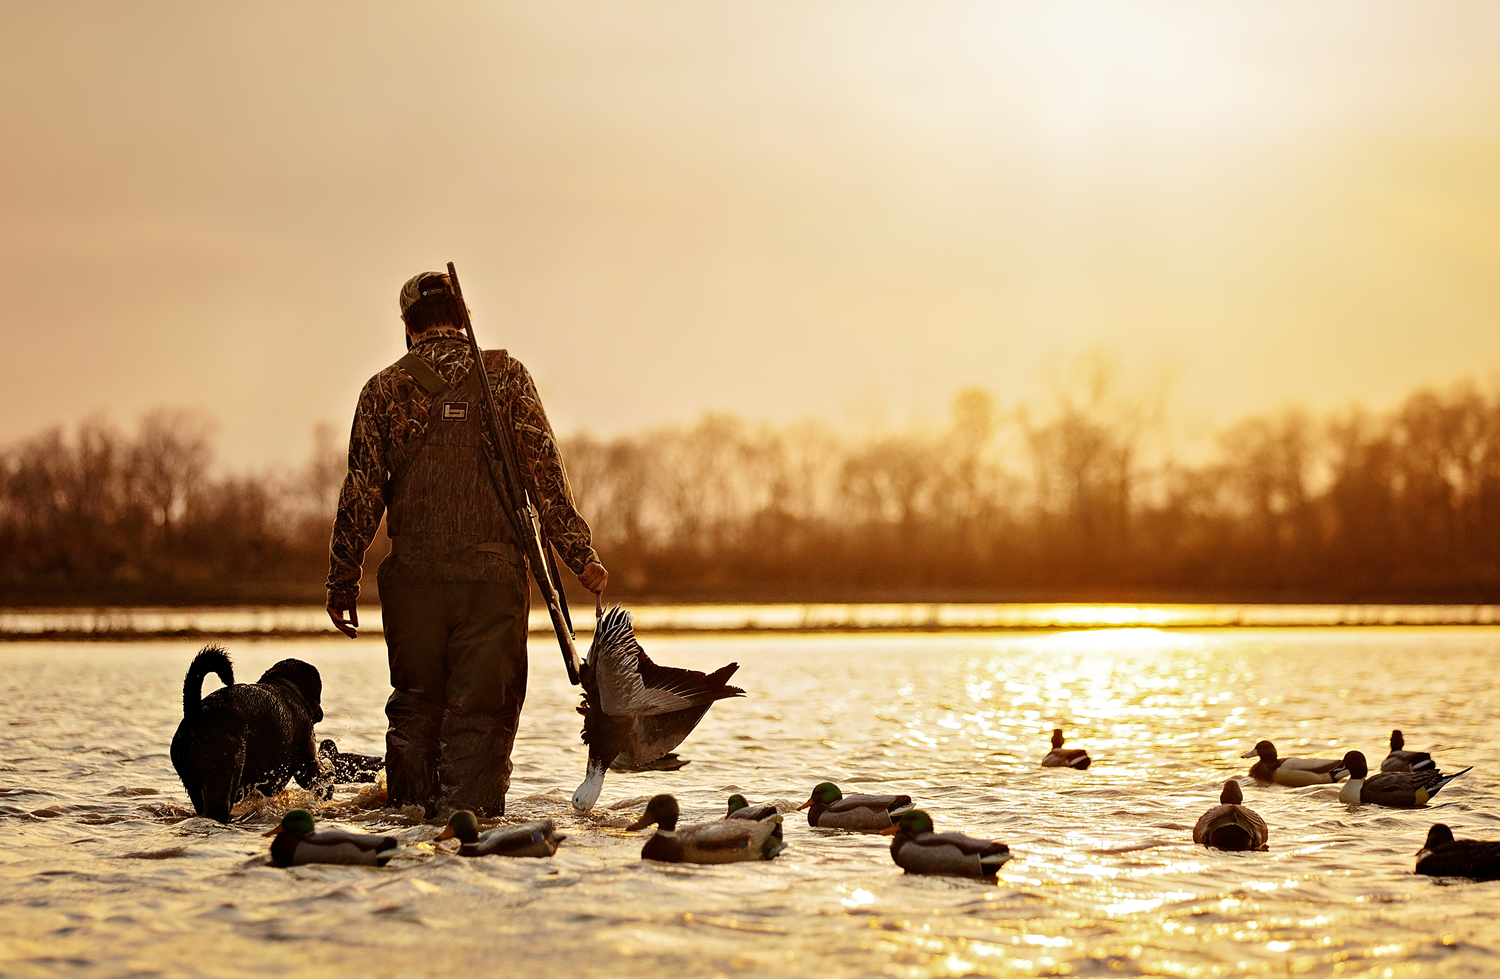 North Mississippi Duck Hunting Dog Photographer